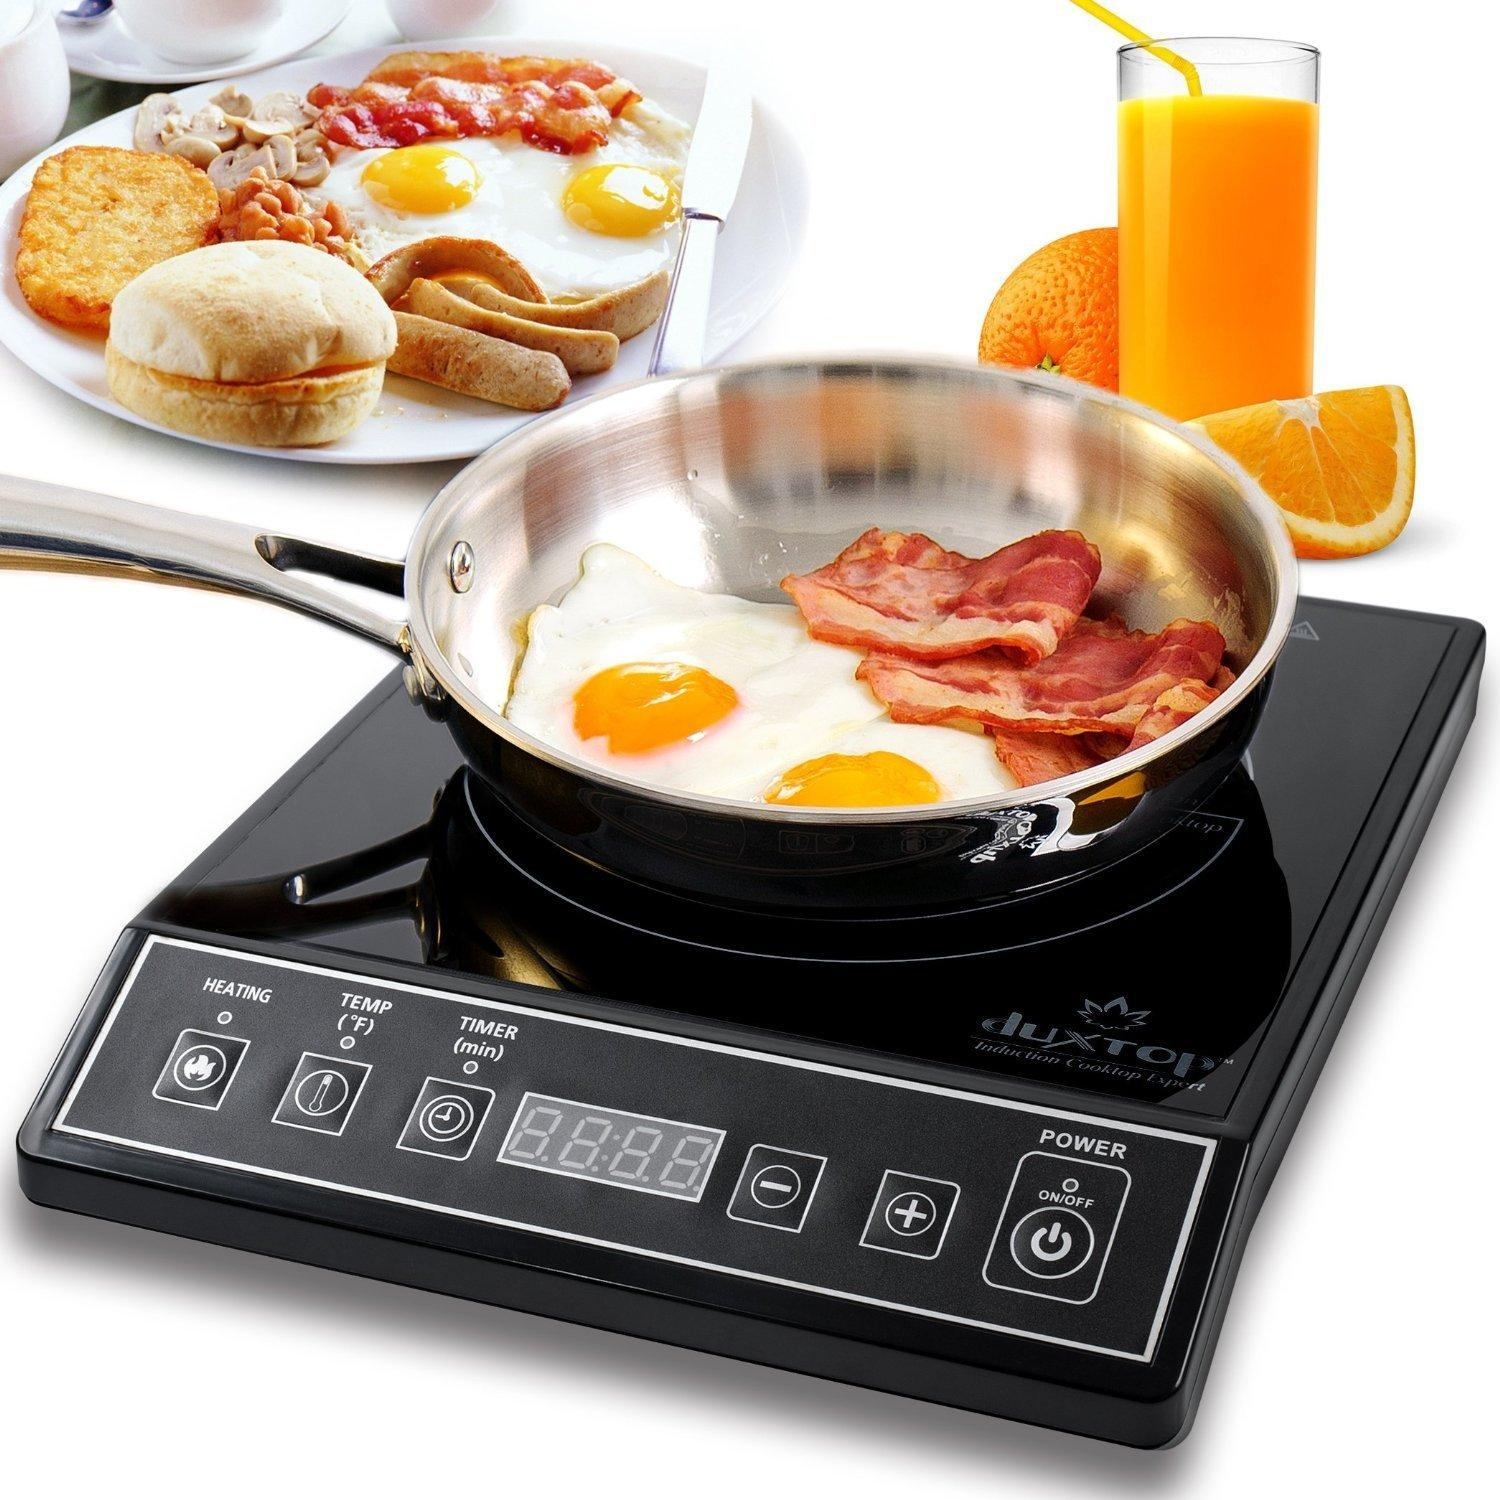 Amazon.com: Secura 9100MC 1800W Portable Induction Cooktop